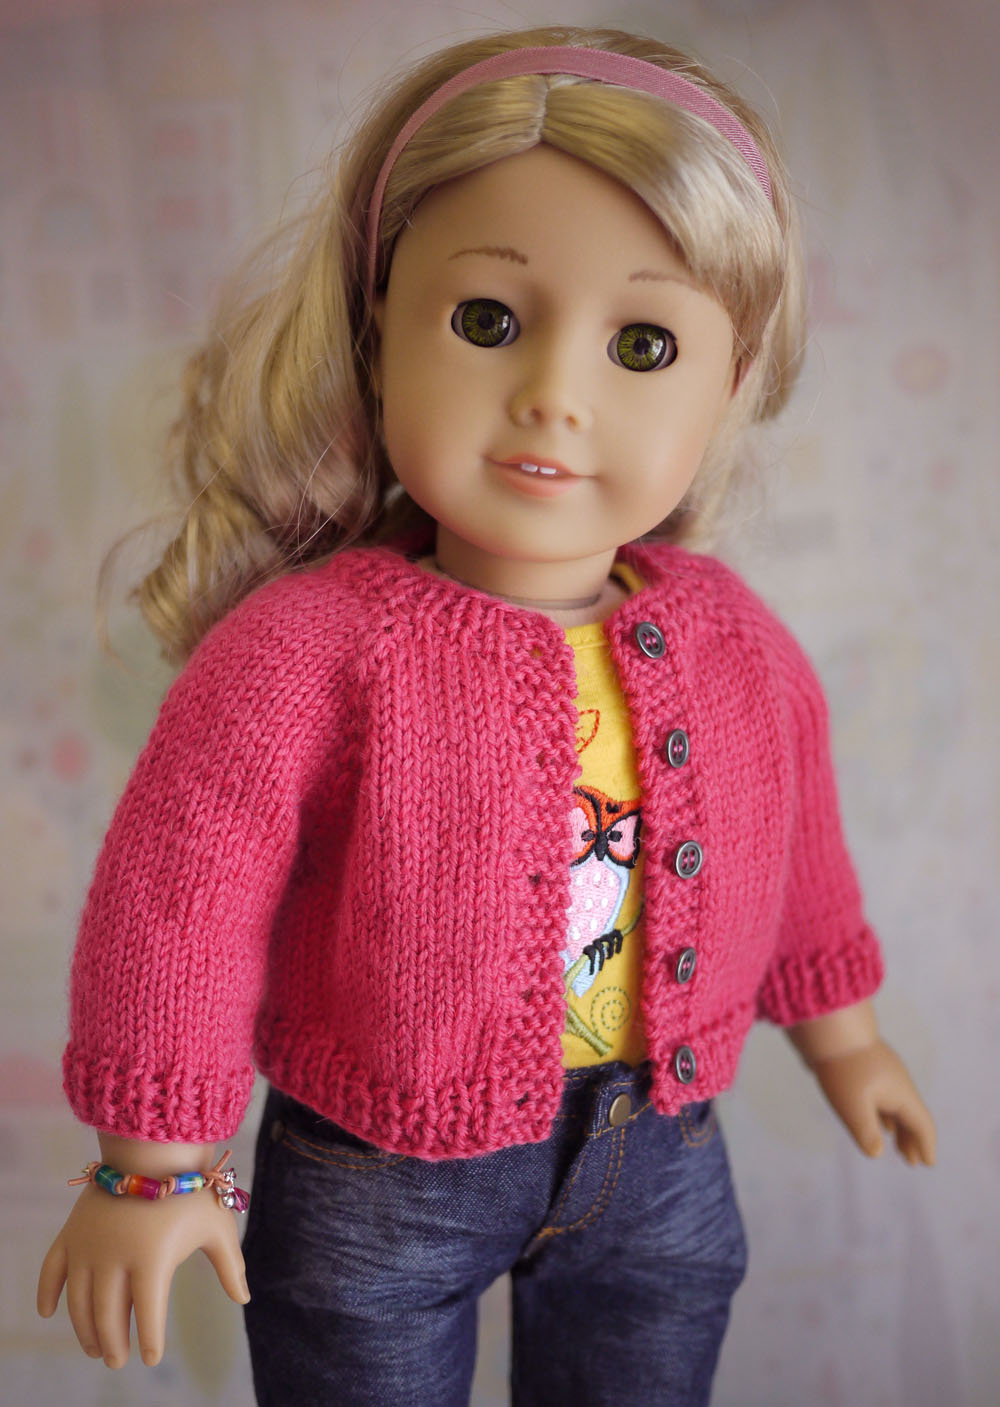 Knitting Patterns For Girl Sweaters : American Girl Doll Cardigan Sweater Knitting Pattern ...